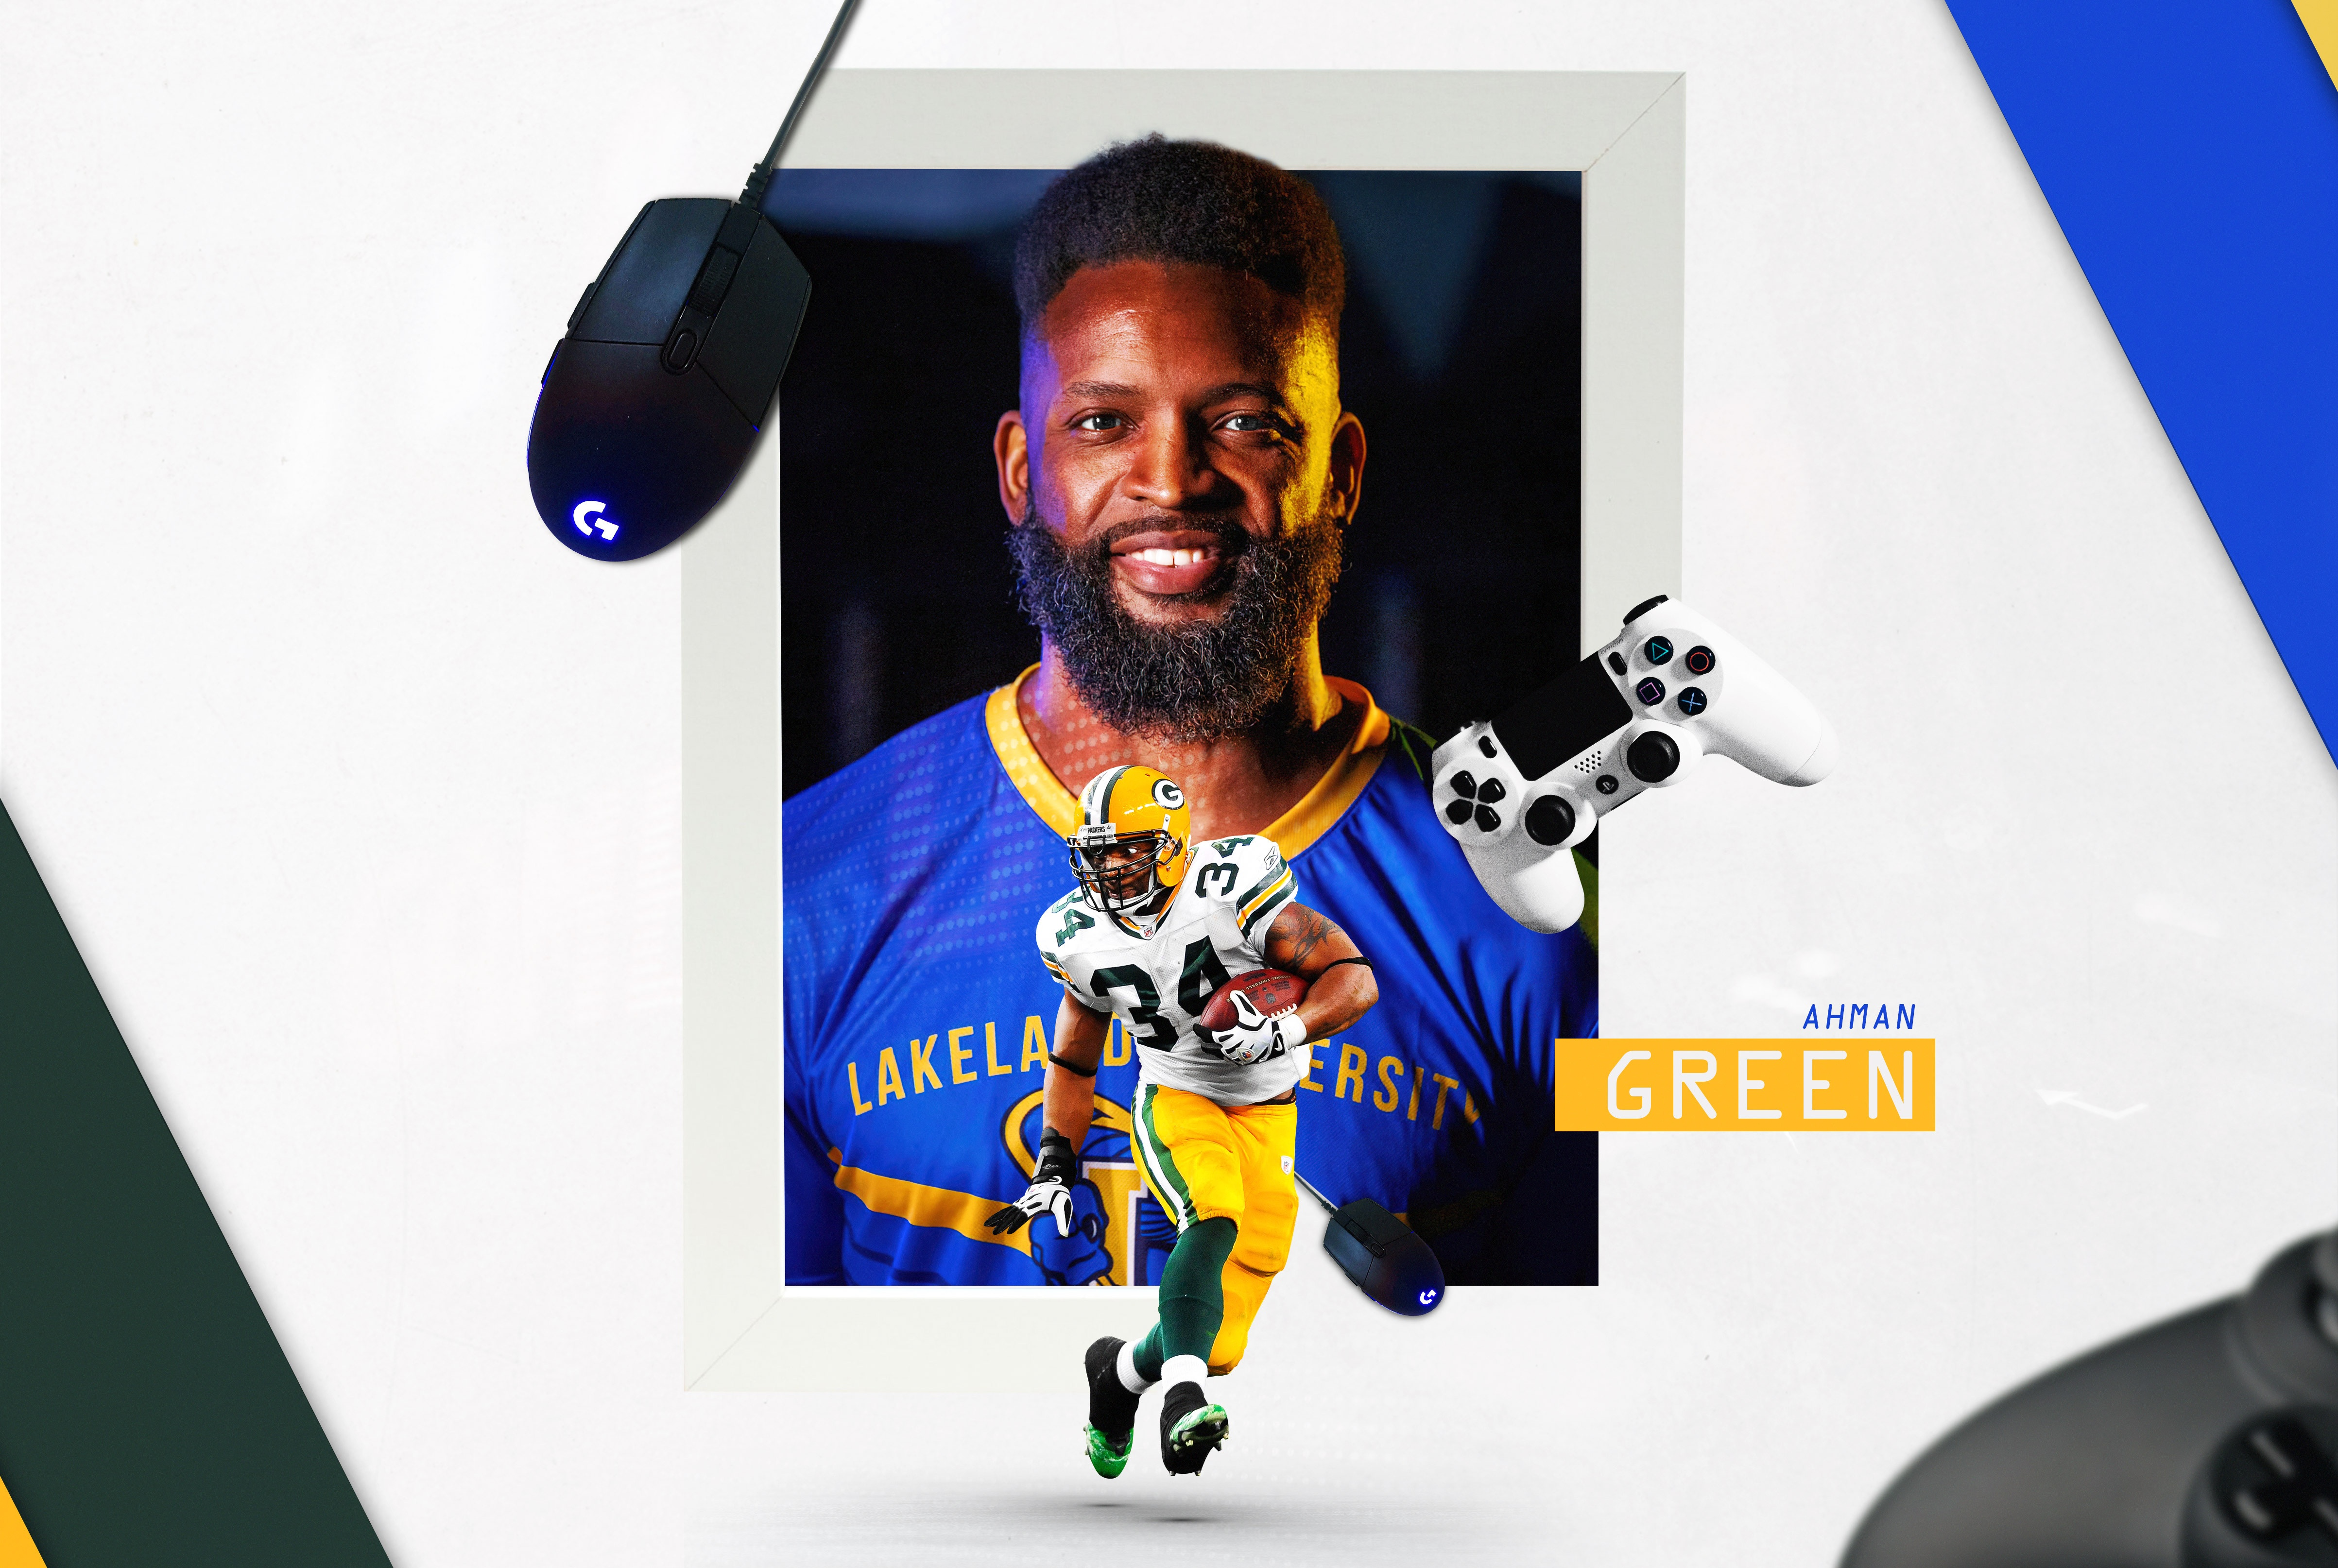 Ahman Green has transitioned from running the football to running an esports team at Lakeland University